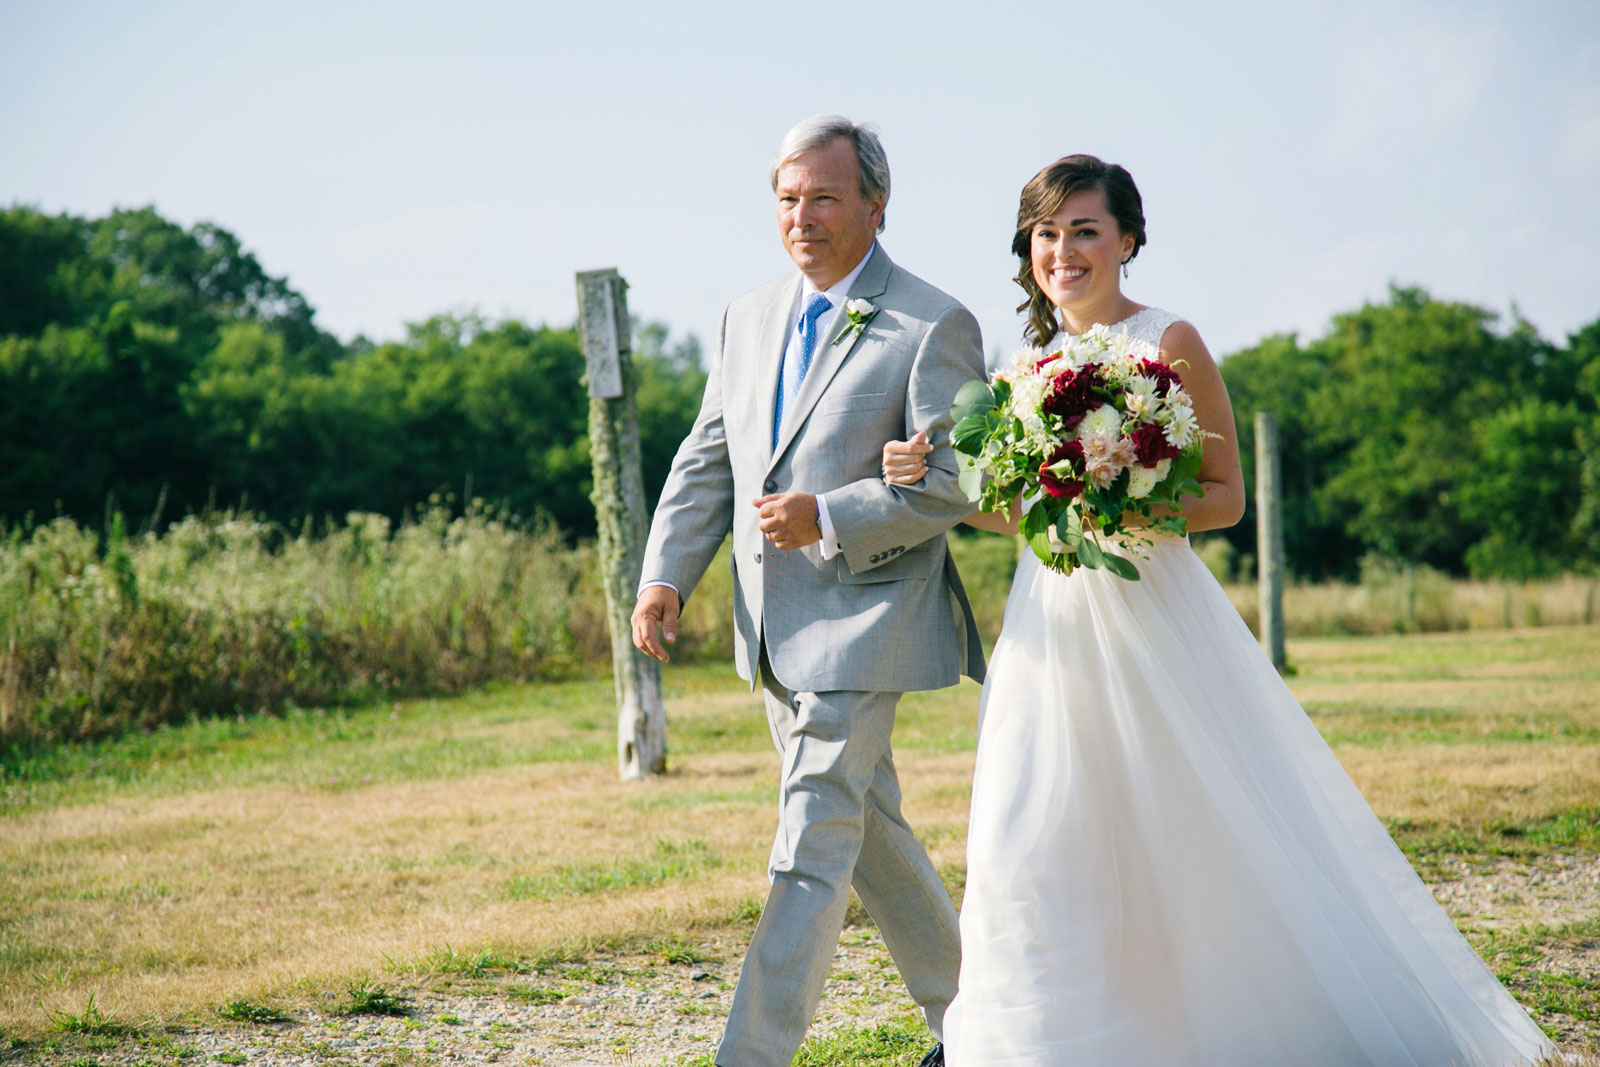 Father of the bride walks bride down the aisle, bride smiling, sunny summer afternoon wedding